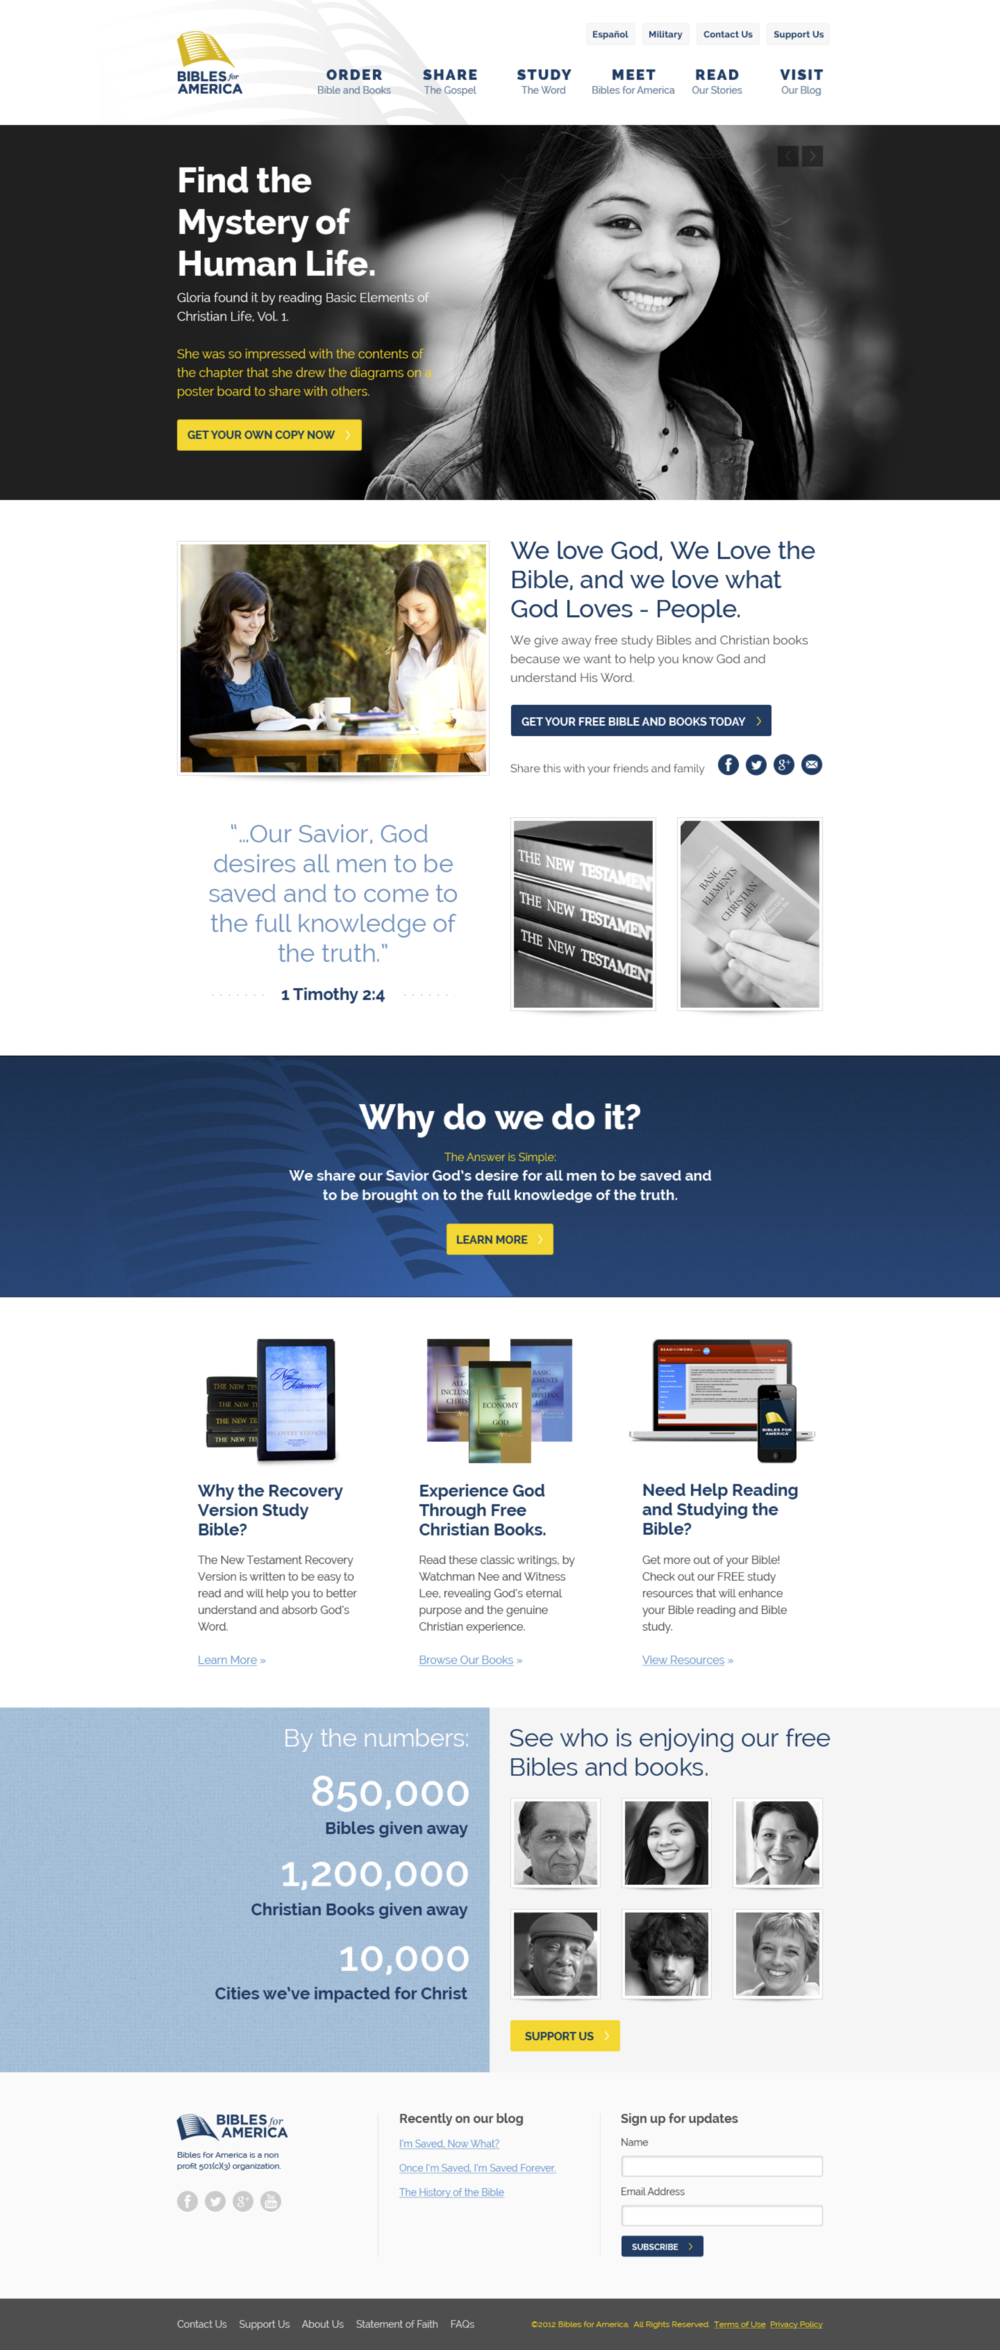 Home page visual design by Churchmedia